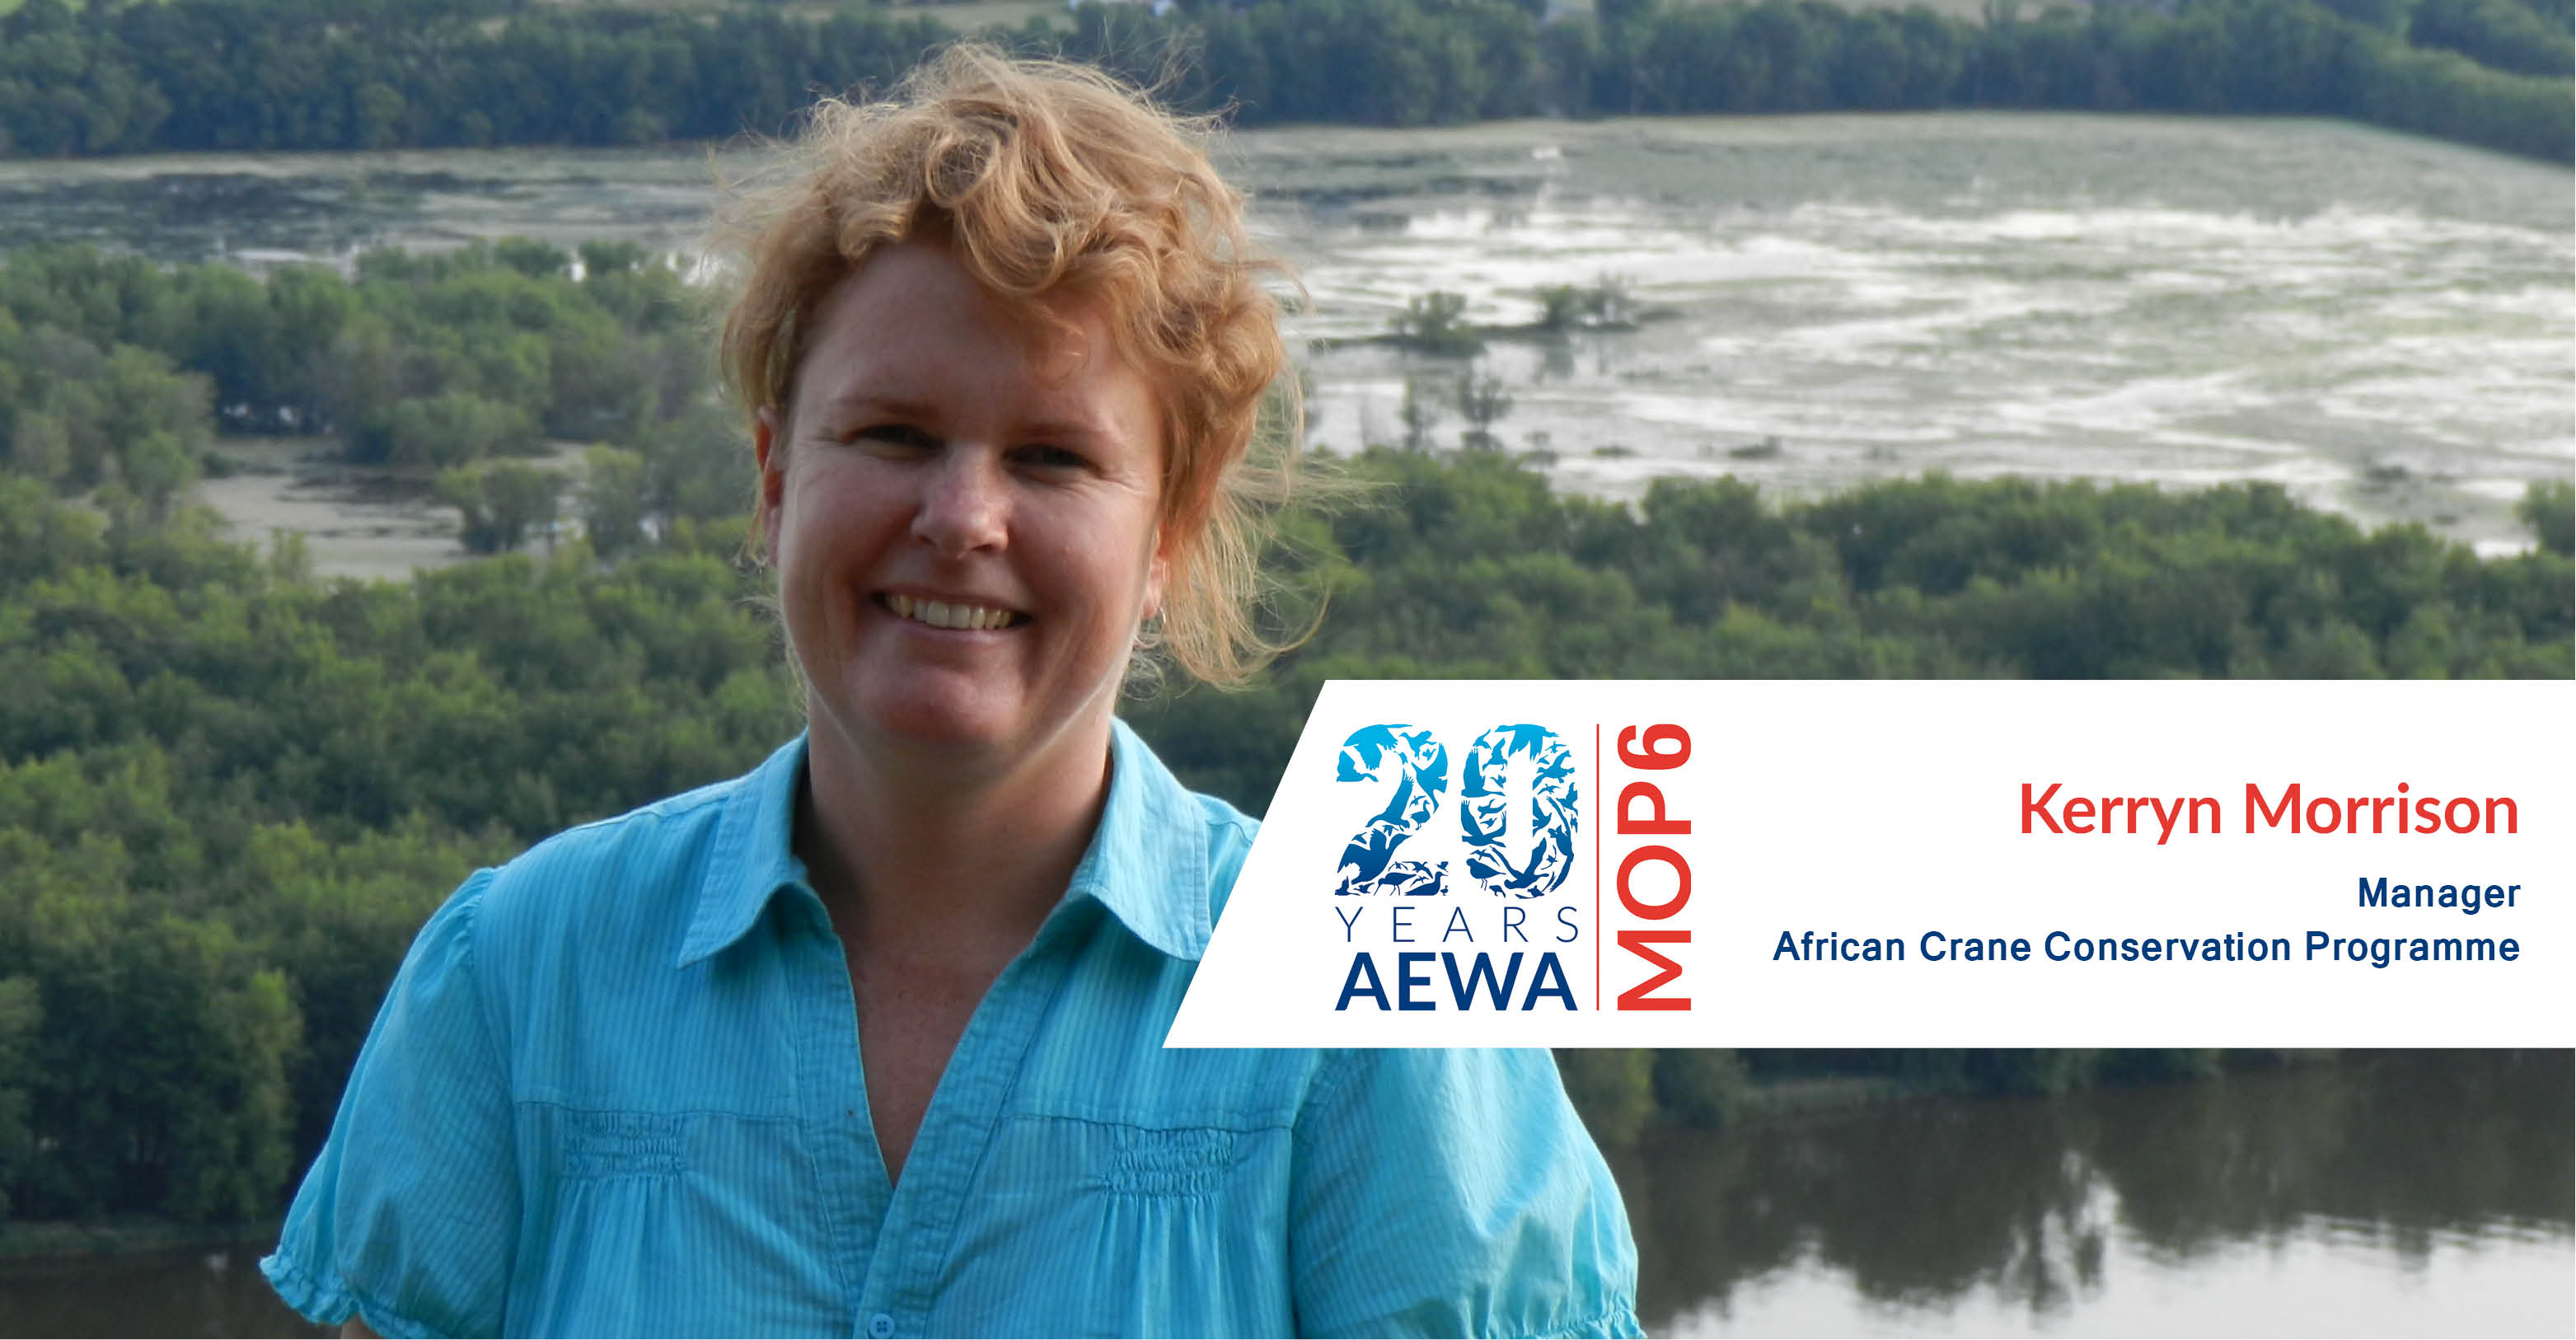 Ms. Kerryn Morrison, Manager, African Crane Conservation Programme